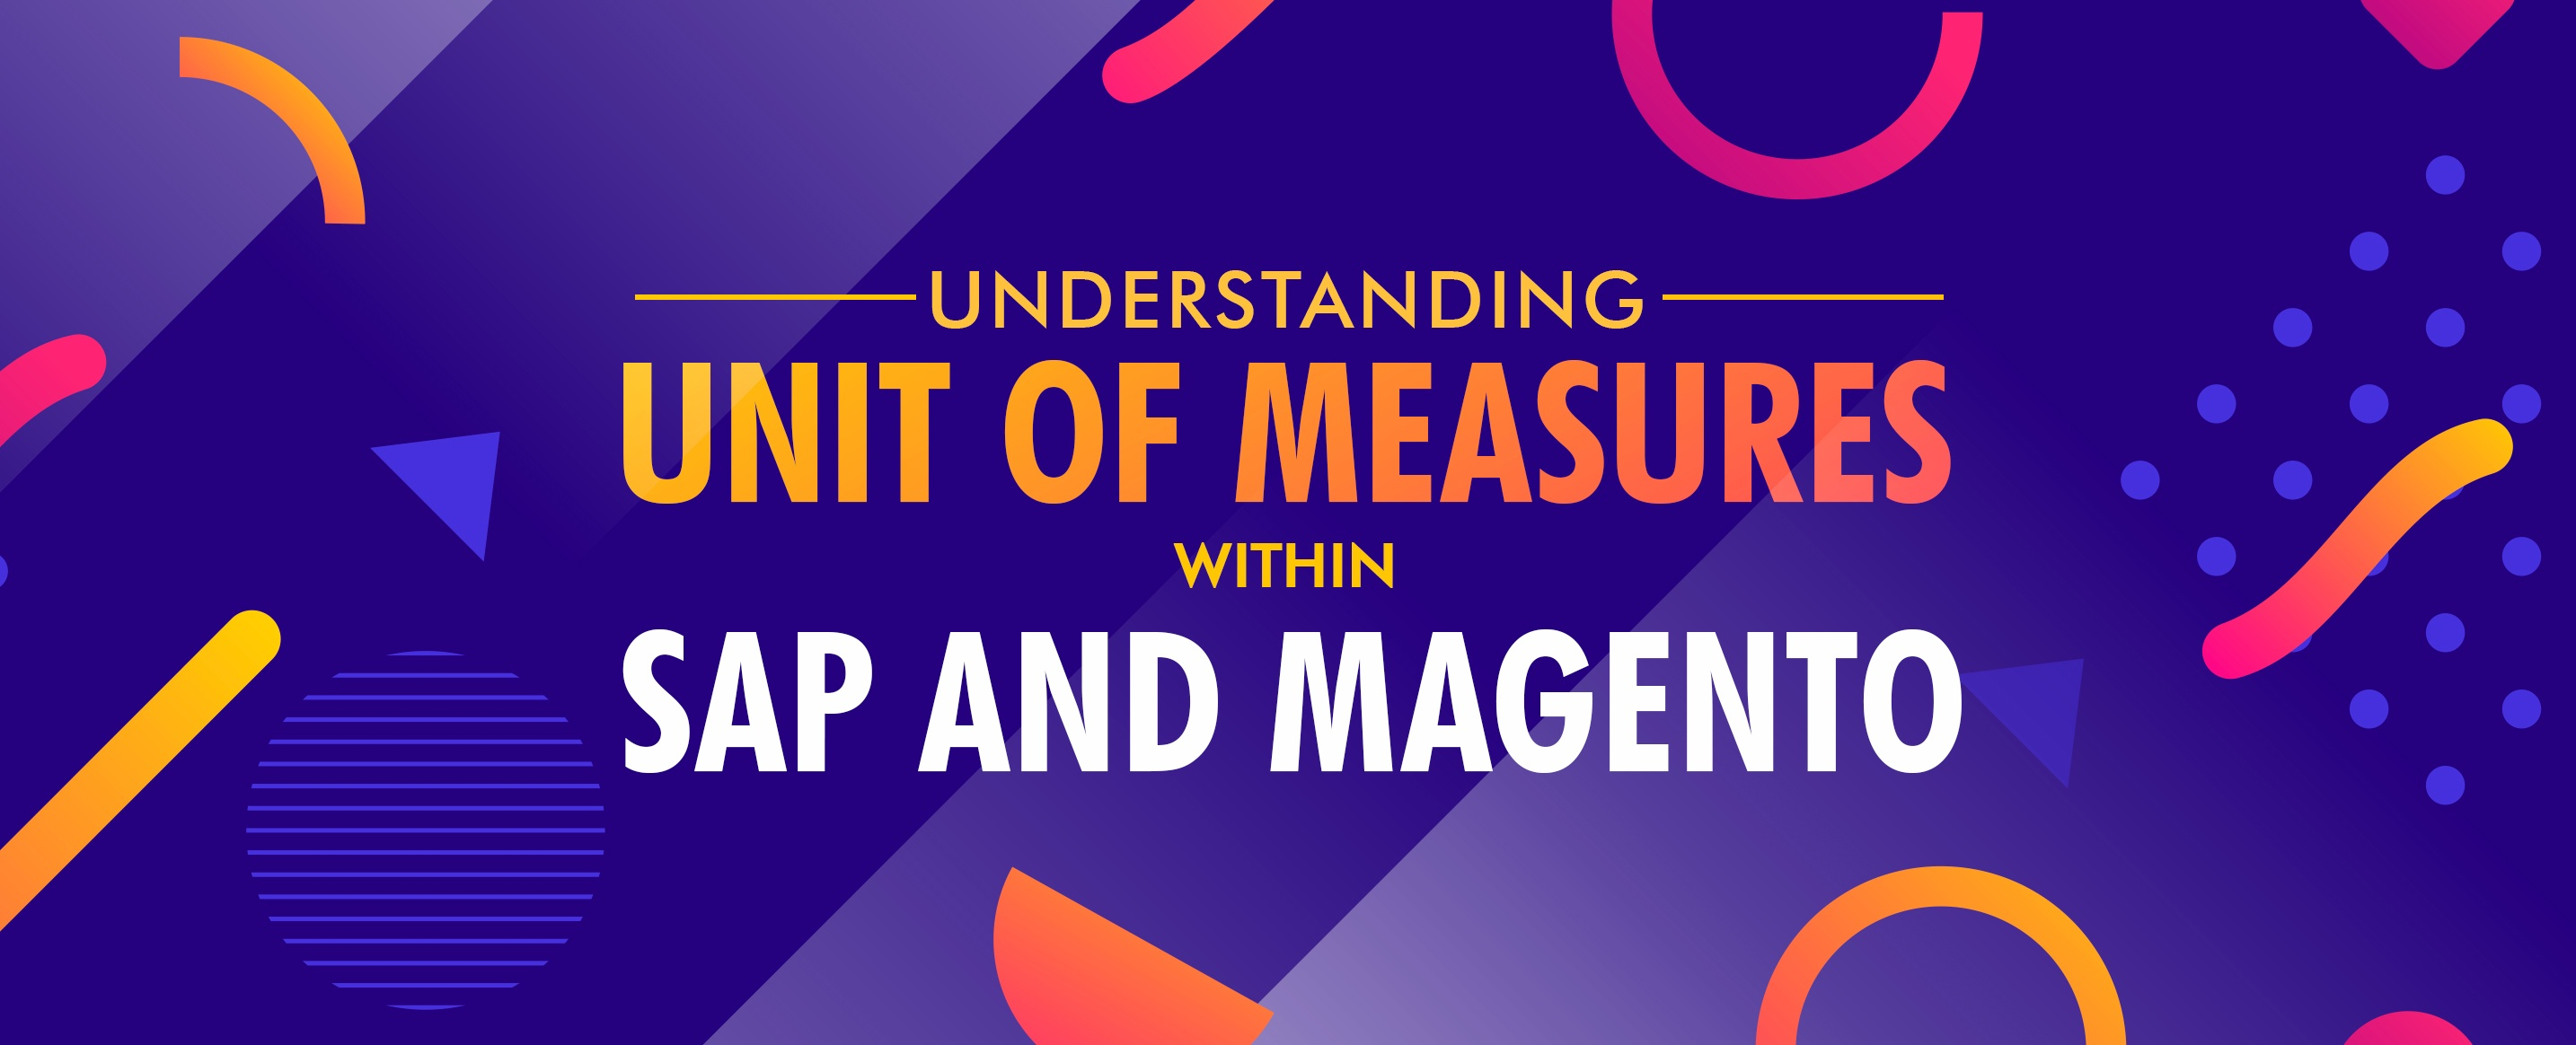 Understanding-Unit-of-Measures-within-SAP-ERP-and-Magento